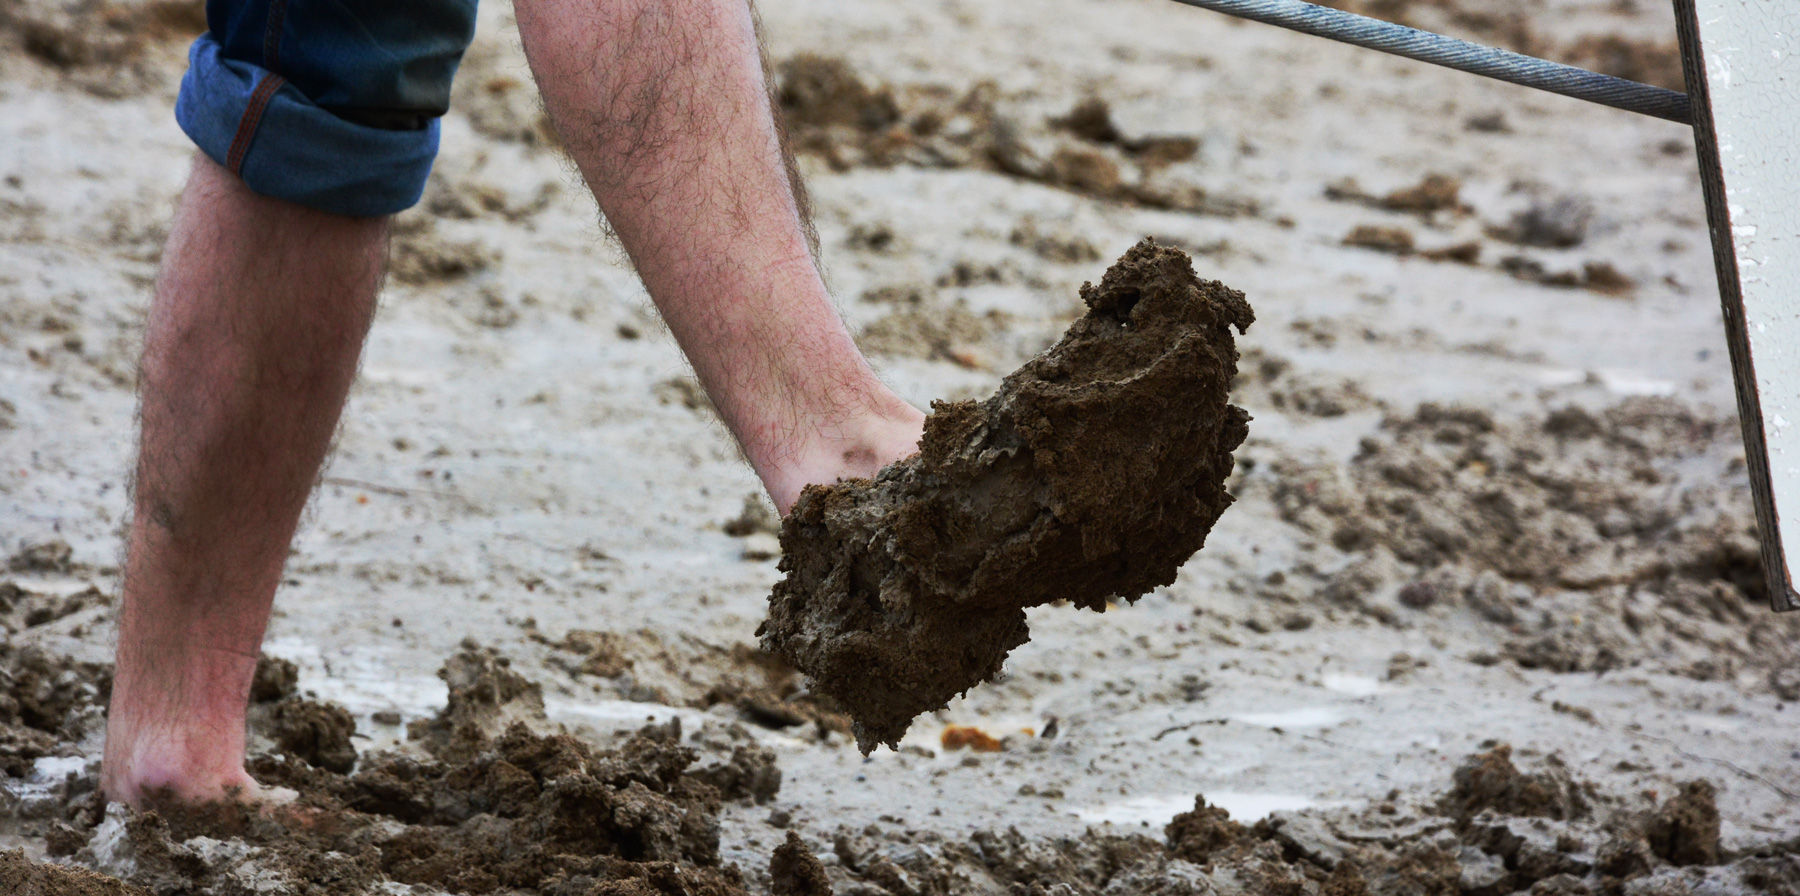 9.008 muddy feet stock photos, vectors, and illustrations are available royalty-free.